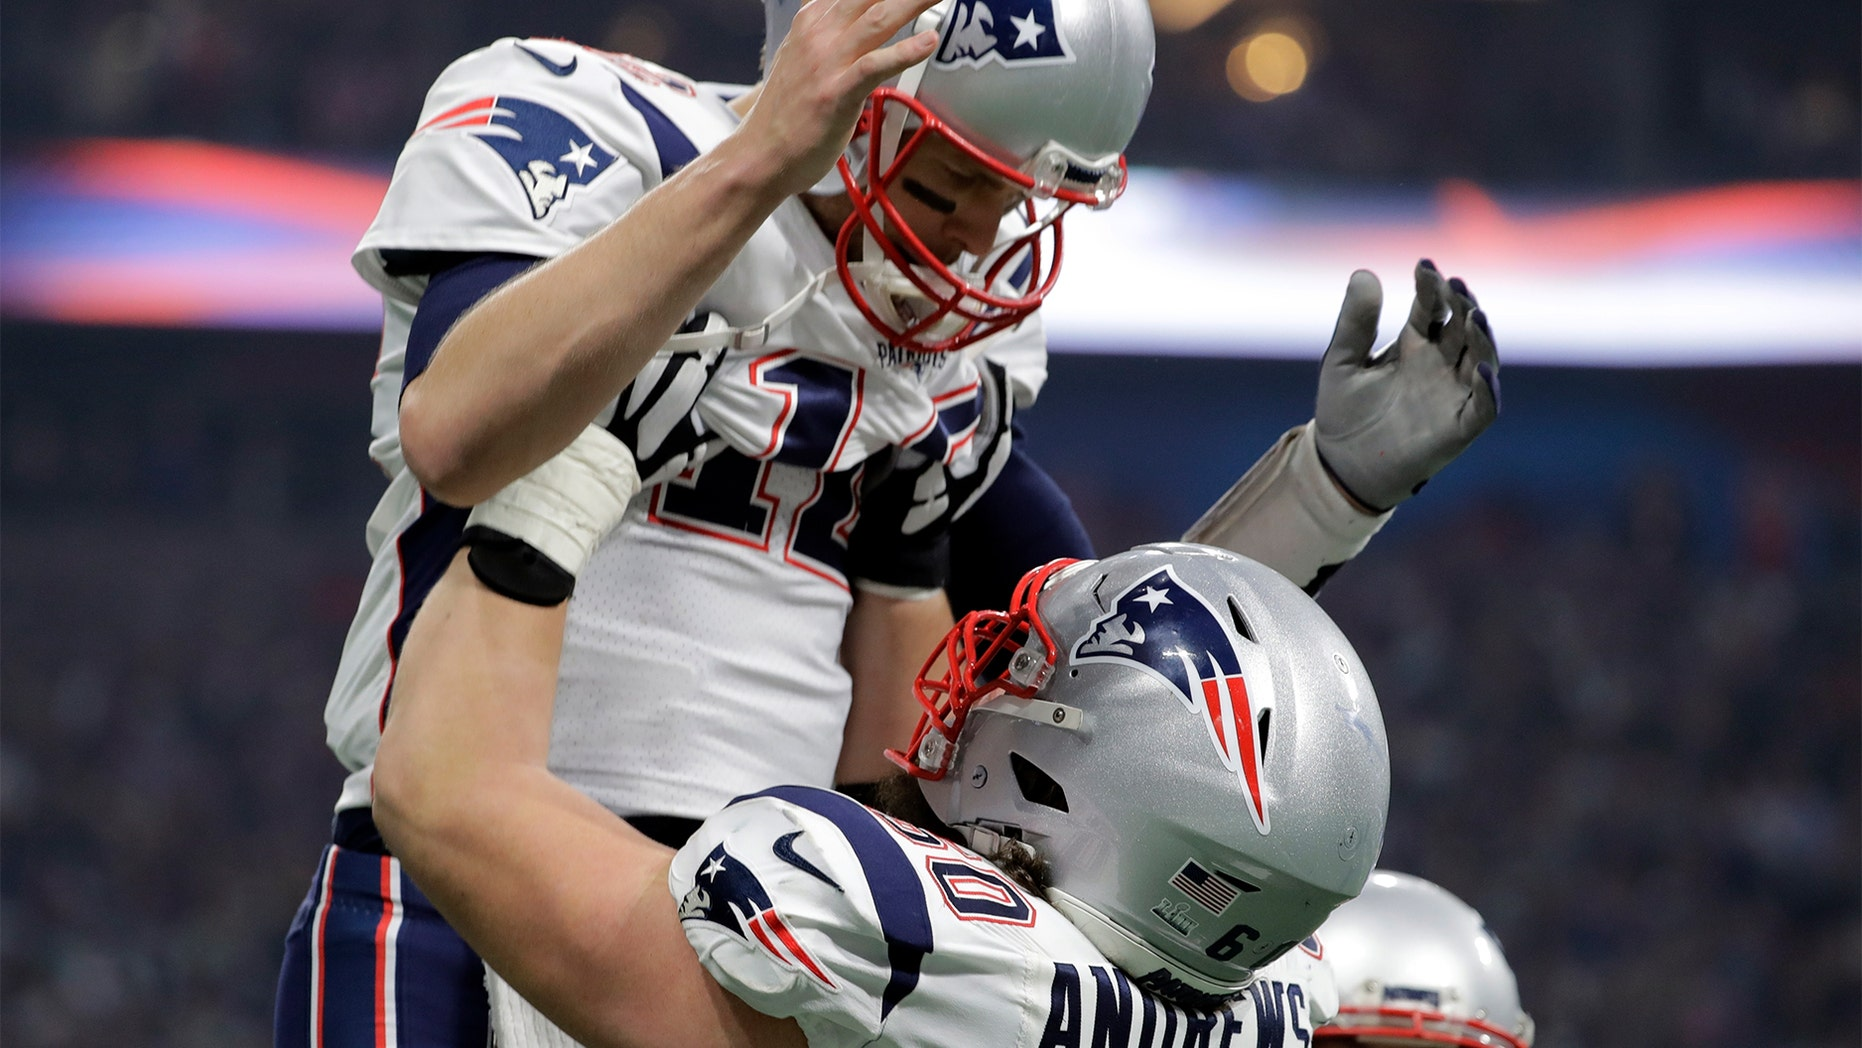 New England Patriots' David Andrews (60) picks up Tom Brady (12) after the Patriots scored a touchdown during the second half of the NFL Super Bowl VII against the Los Angeles Rams Sunday in Atlanta. (AP Photo/Jeff Roberson)